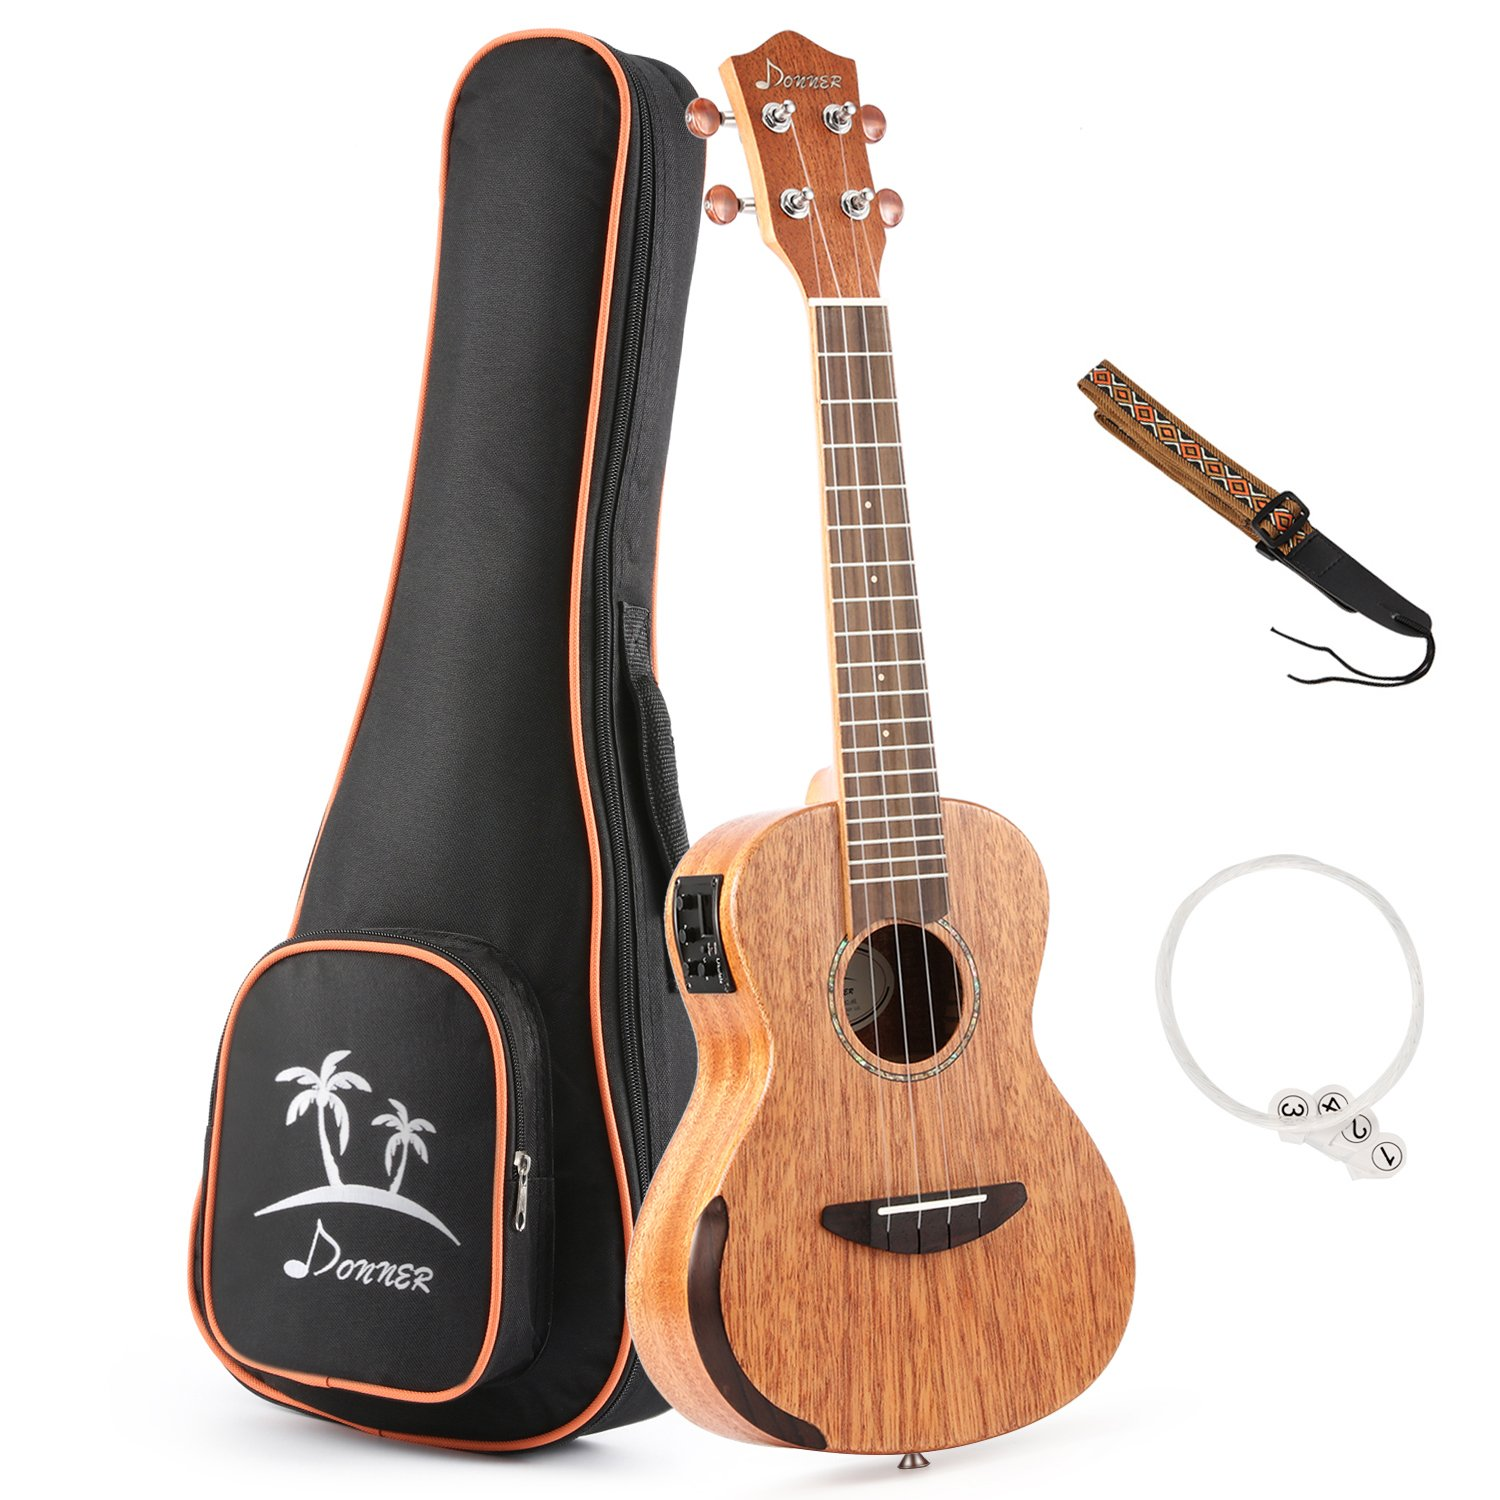 4. Donner Solid Electro-acoustic Ukulele Electric